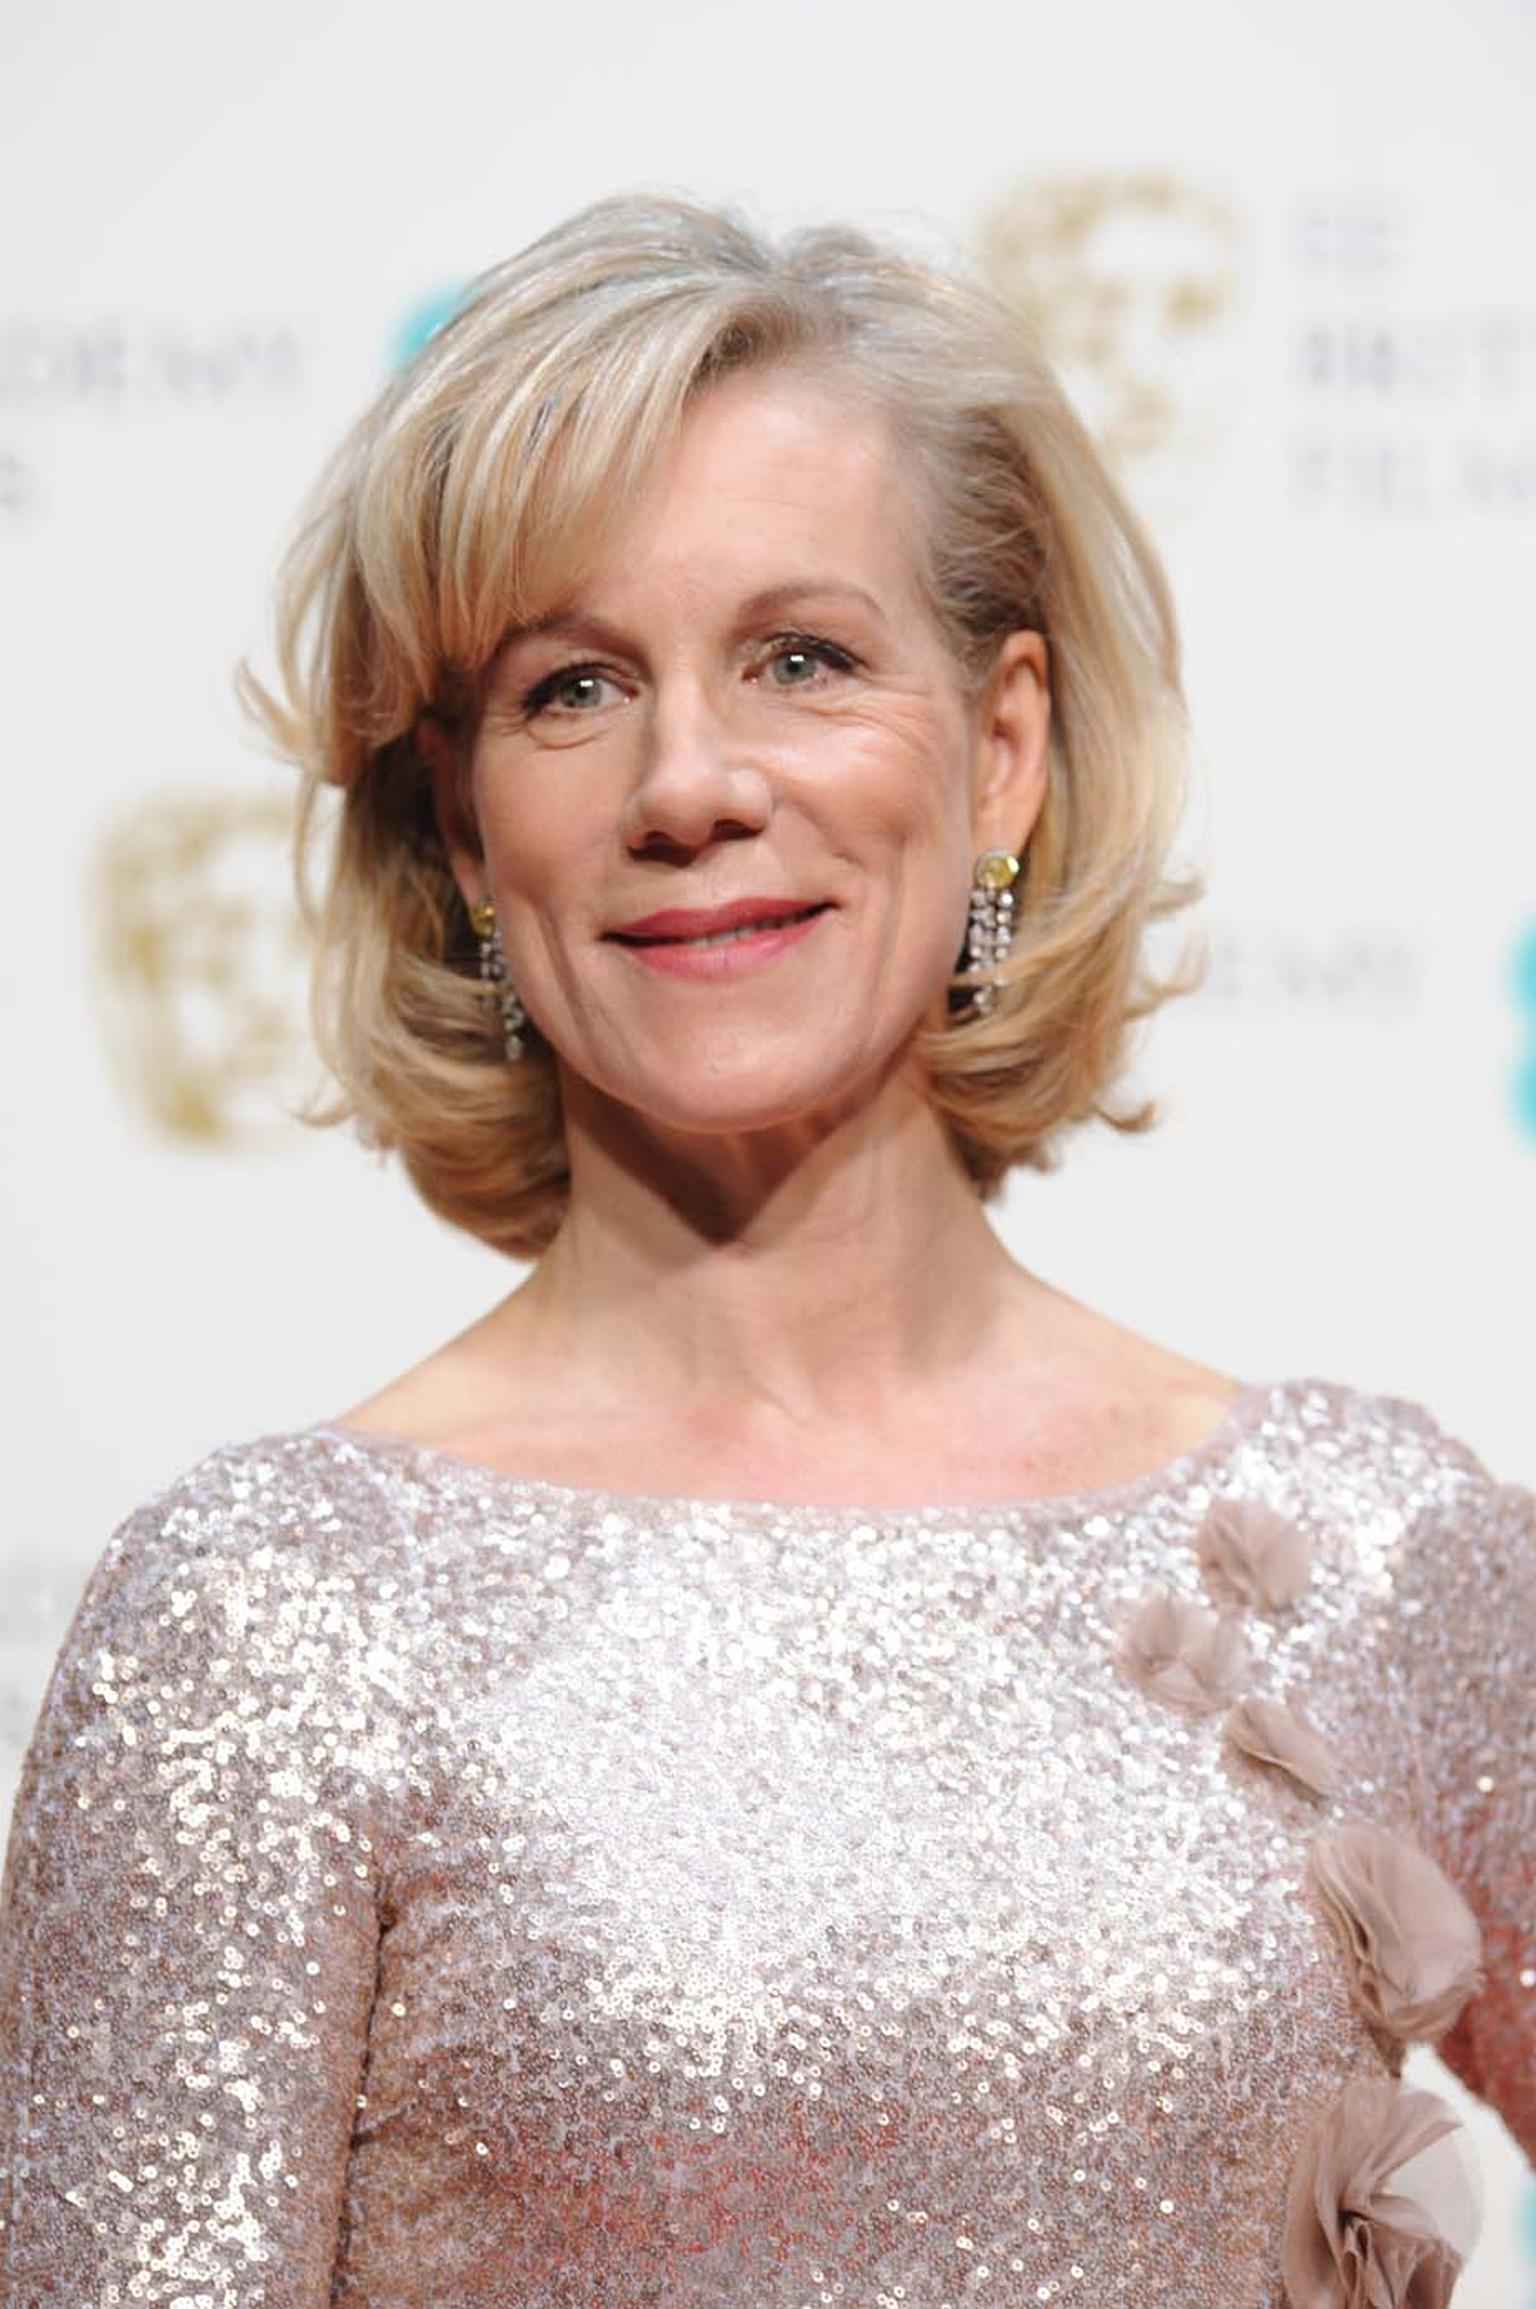 Award presenter Juliet Stevenson also wore Asprey jewels, including a pair of yellow diamond earrings